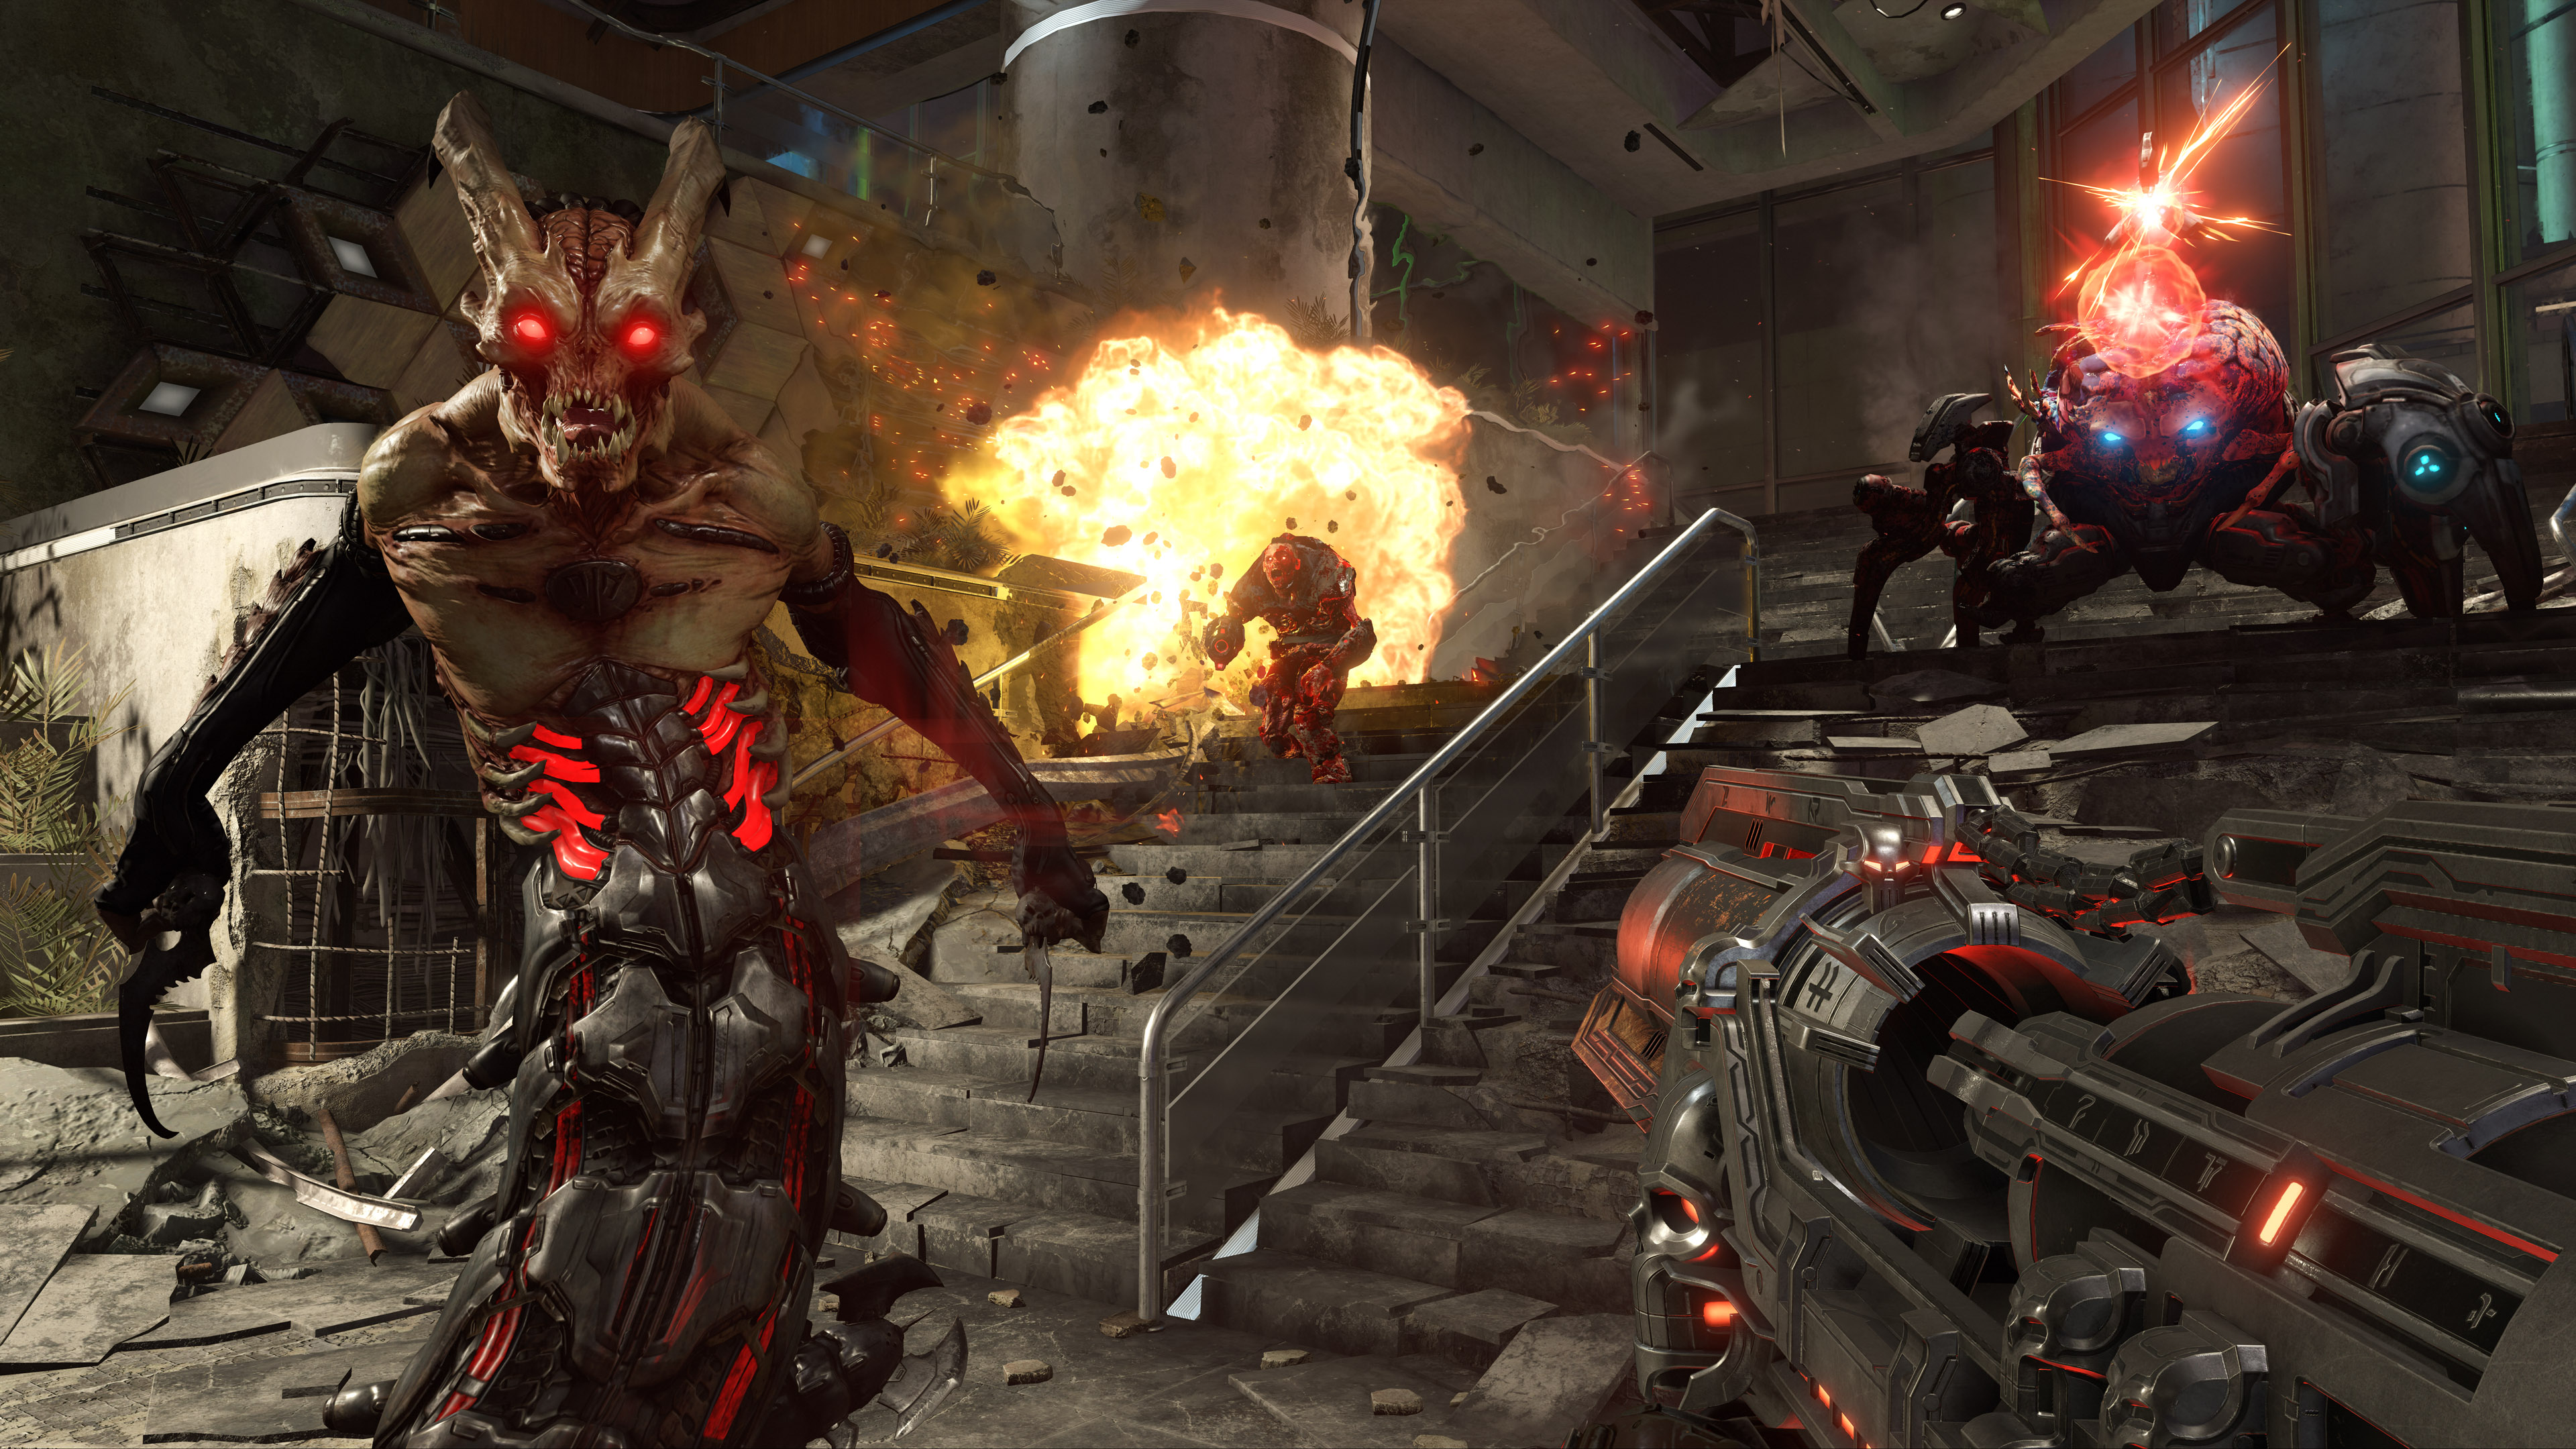 A giant gun is aimed and ready as three demons prepare for battle on a dilapidated staircase with an explosion at the top.